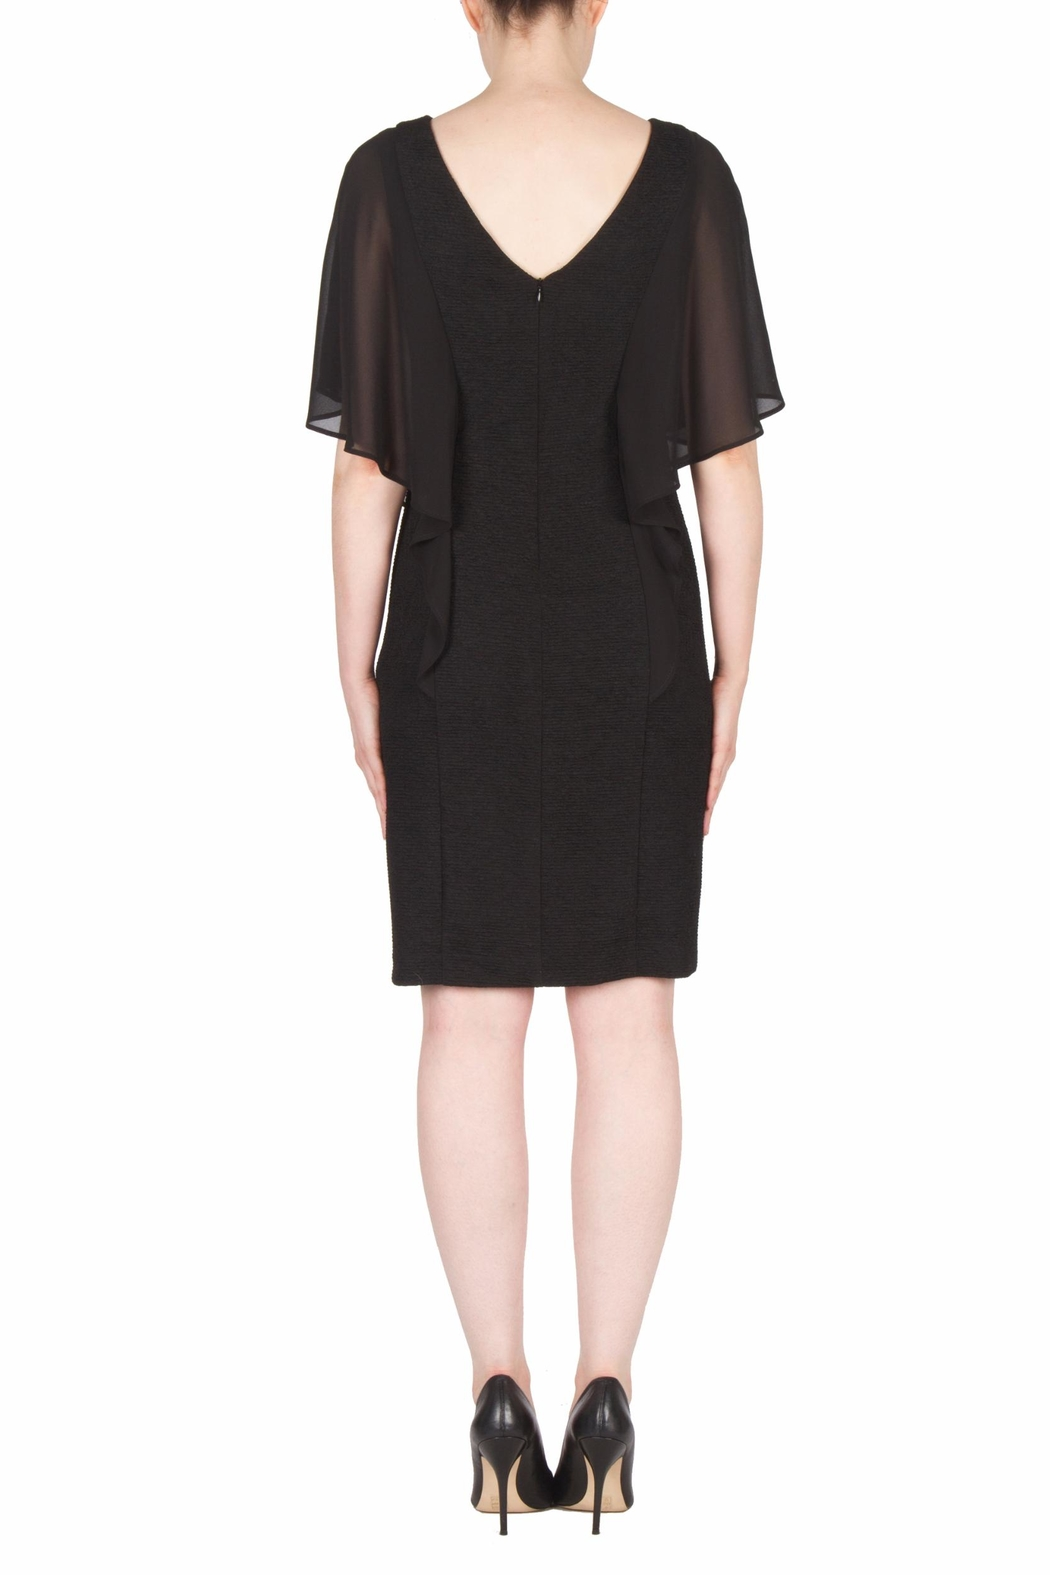 Joseph Ribkoff Ruffle Sleeve Dress - Side Cropped Image